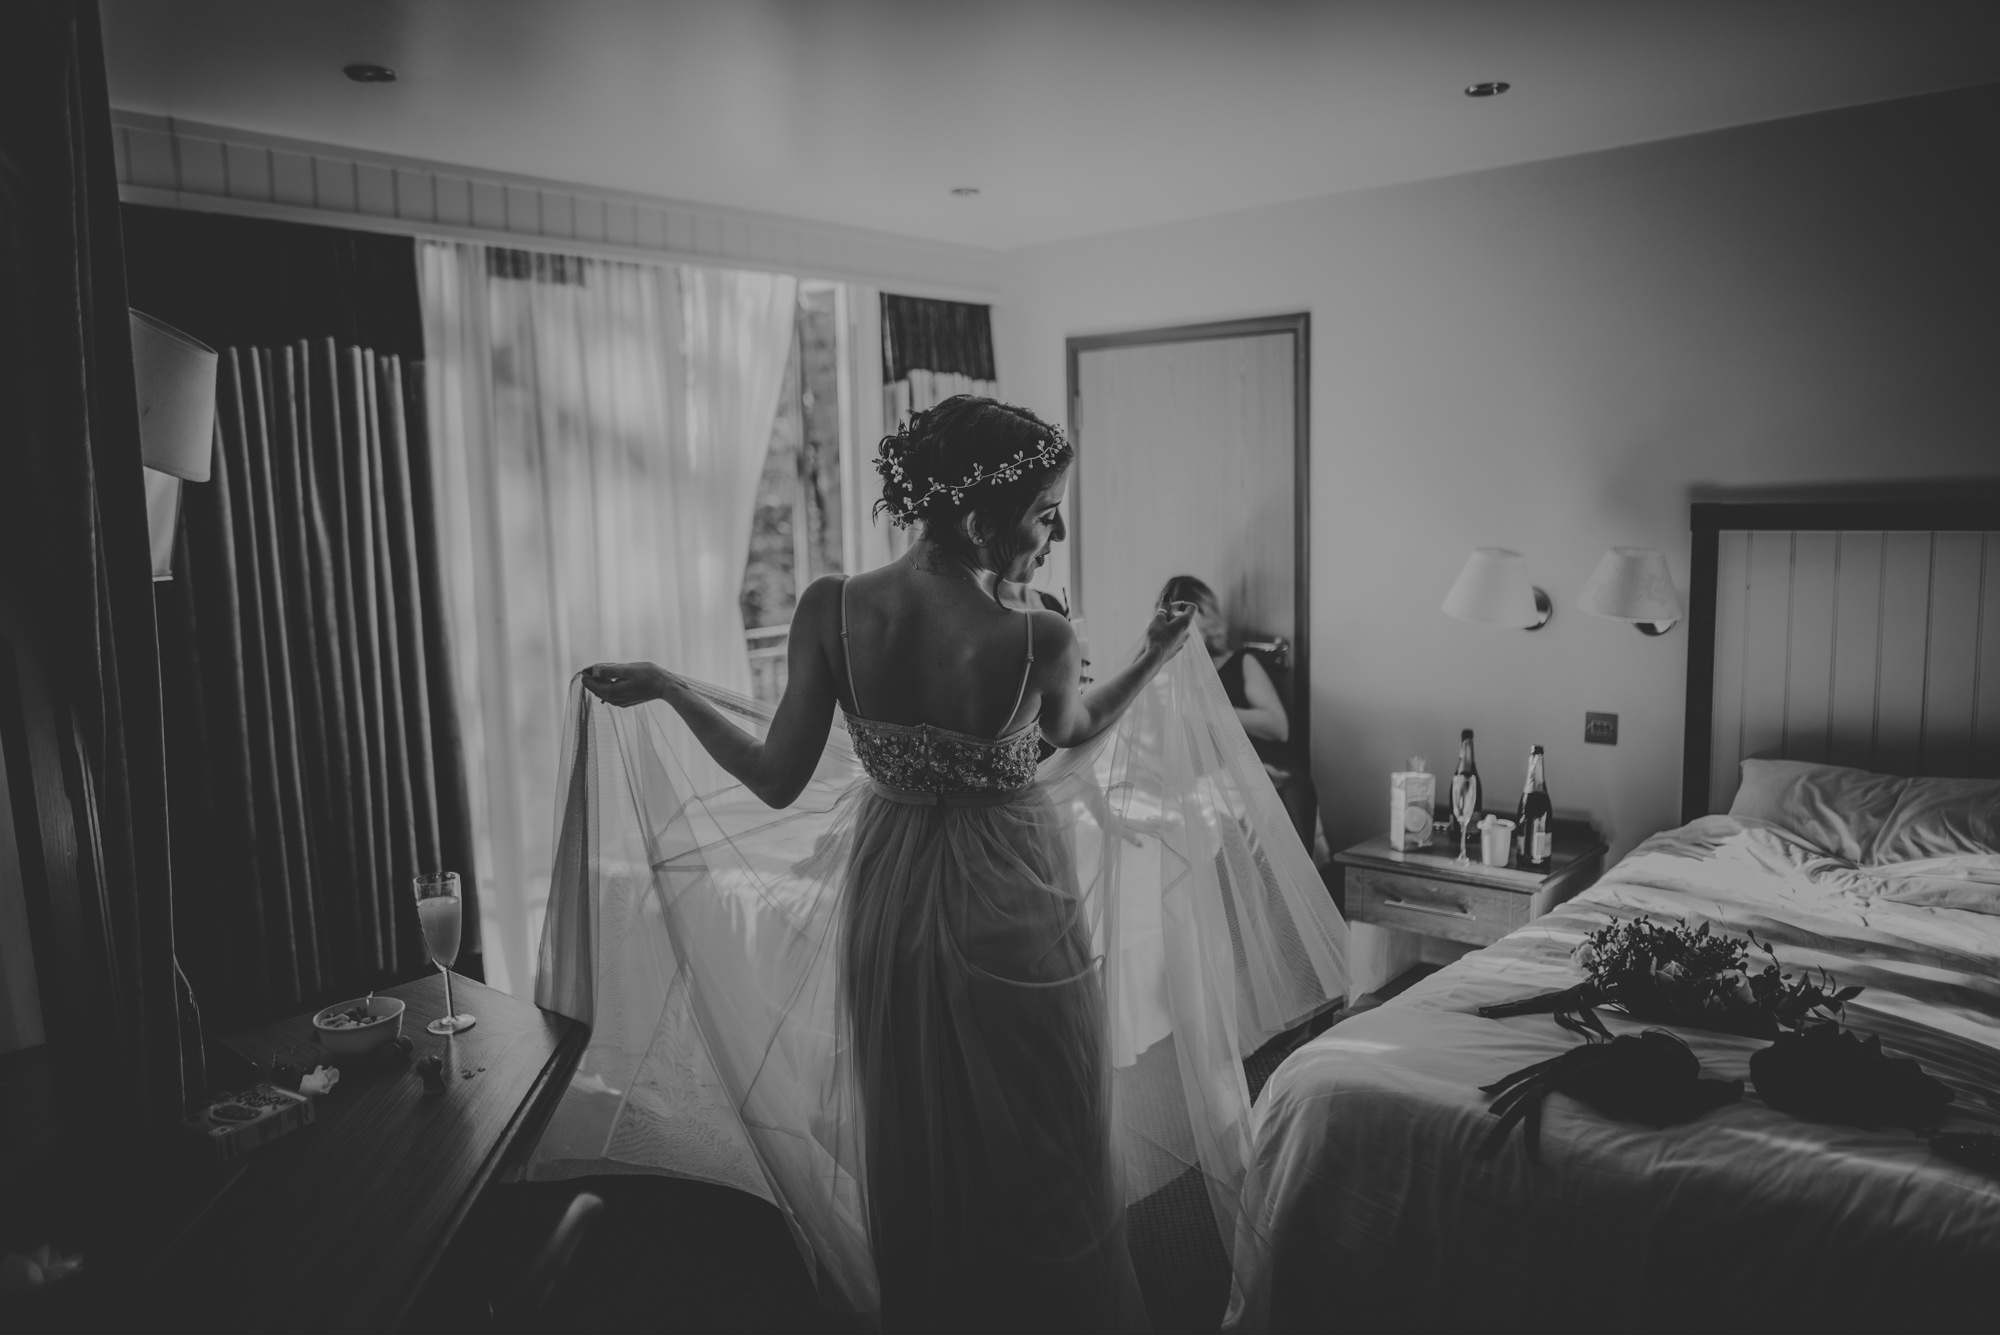 Marissa-and-Ash-Wedding-at-Winchester-Guildhall-and-The-Meade-Hall-Hampshire-Manu-Mendoza-Wedding-Photography-189.jpg